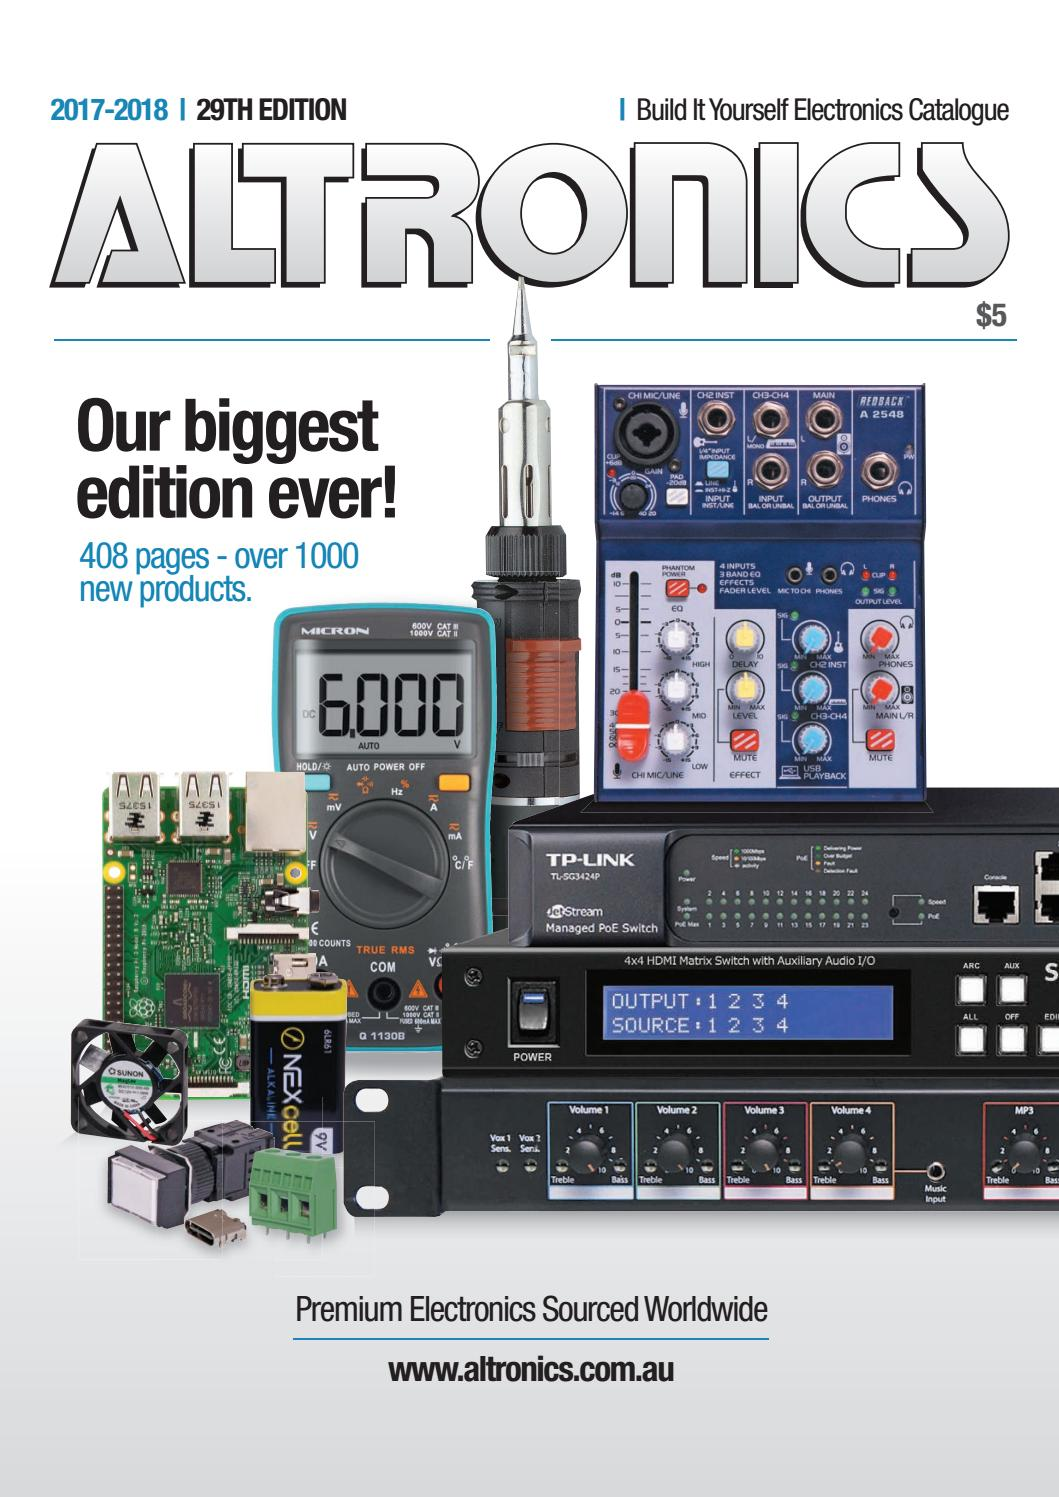 Altronics 2017 18 Electronics Catalogue By Altronicsau Issuu Telephone Switcher Circuit Diagram